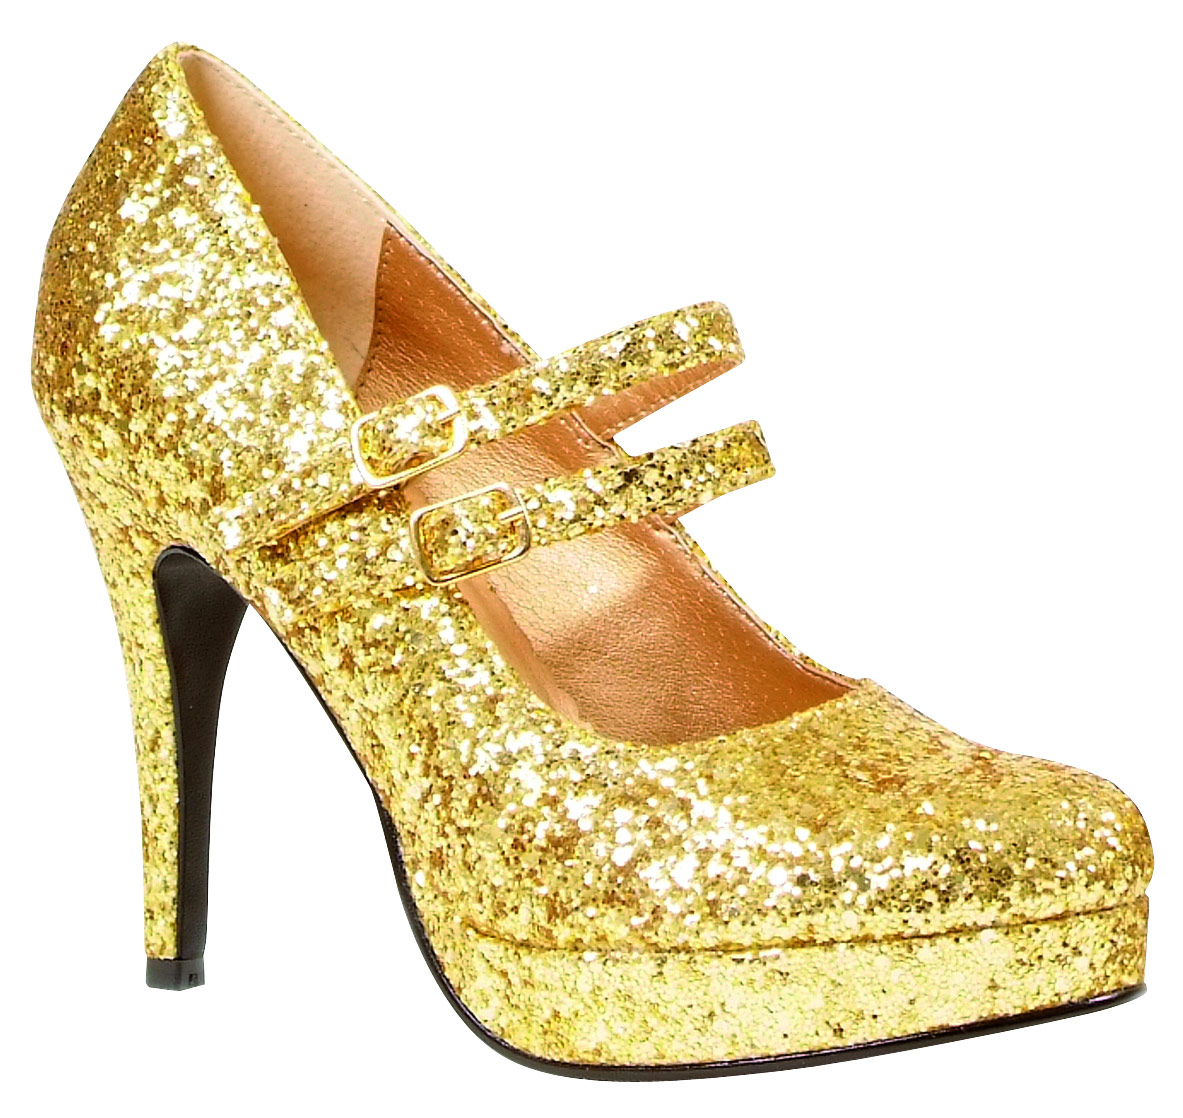 Chaussures pour femmes Paillettes d'or Mary Jane chaussures